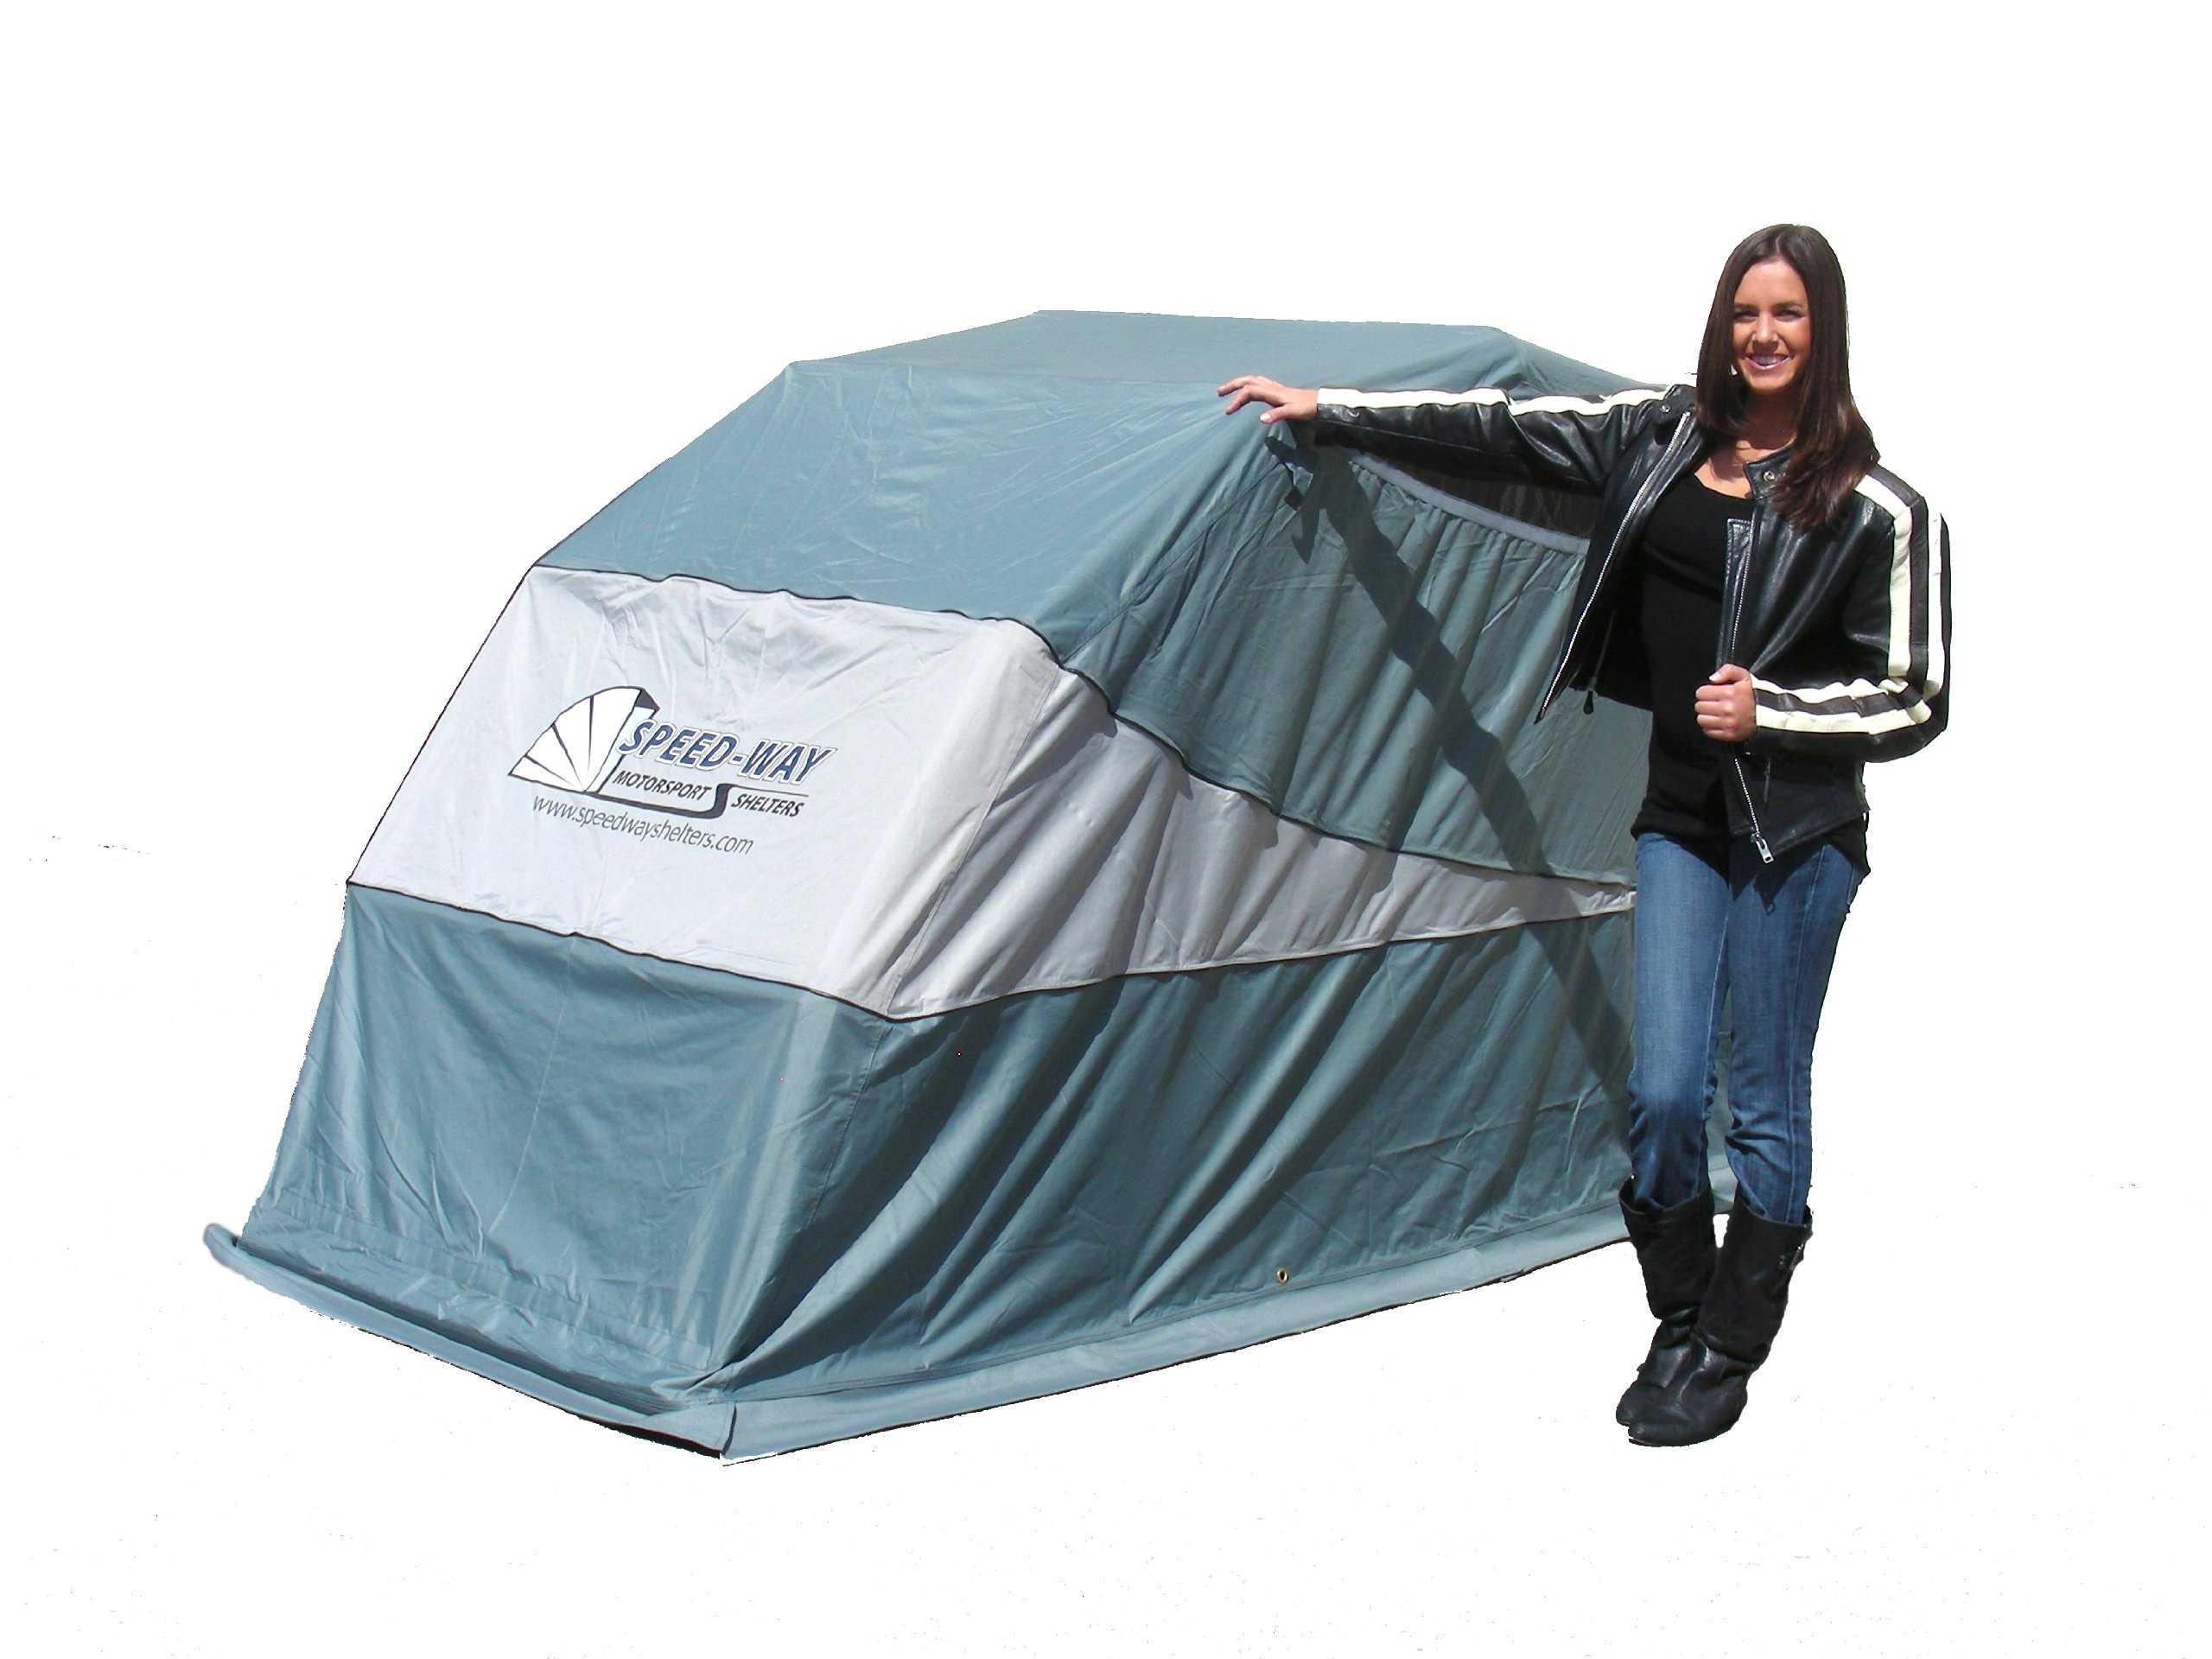 Speed-Way MTS-GRY Grey Standard/Small Sport Shelter